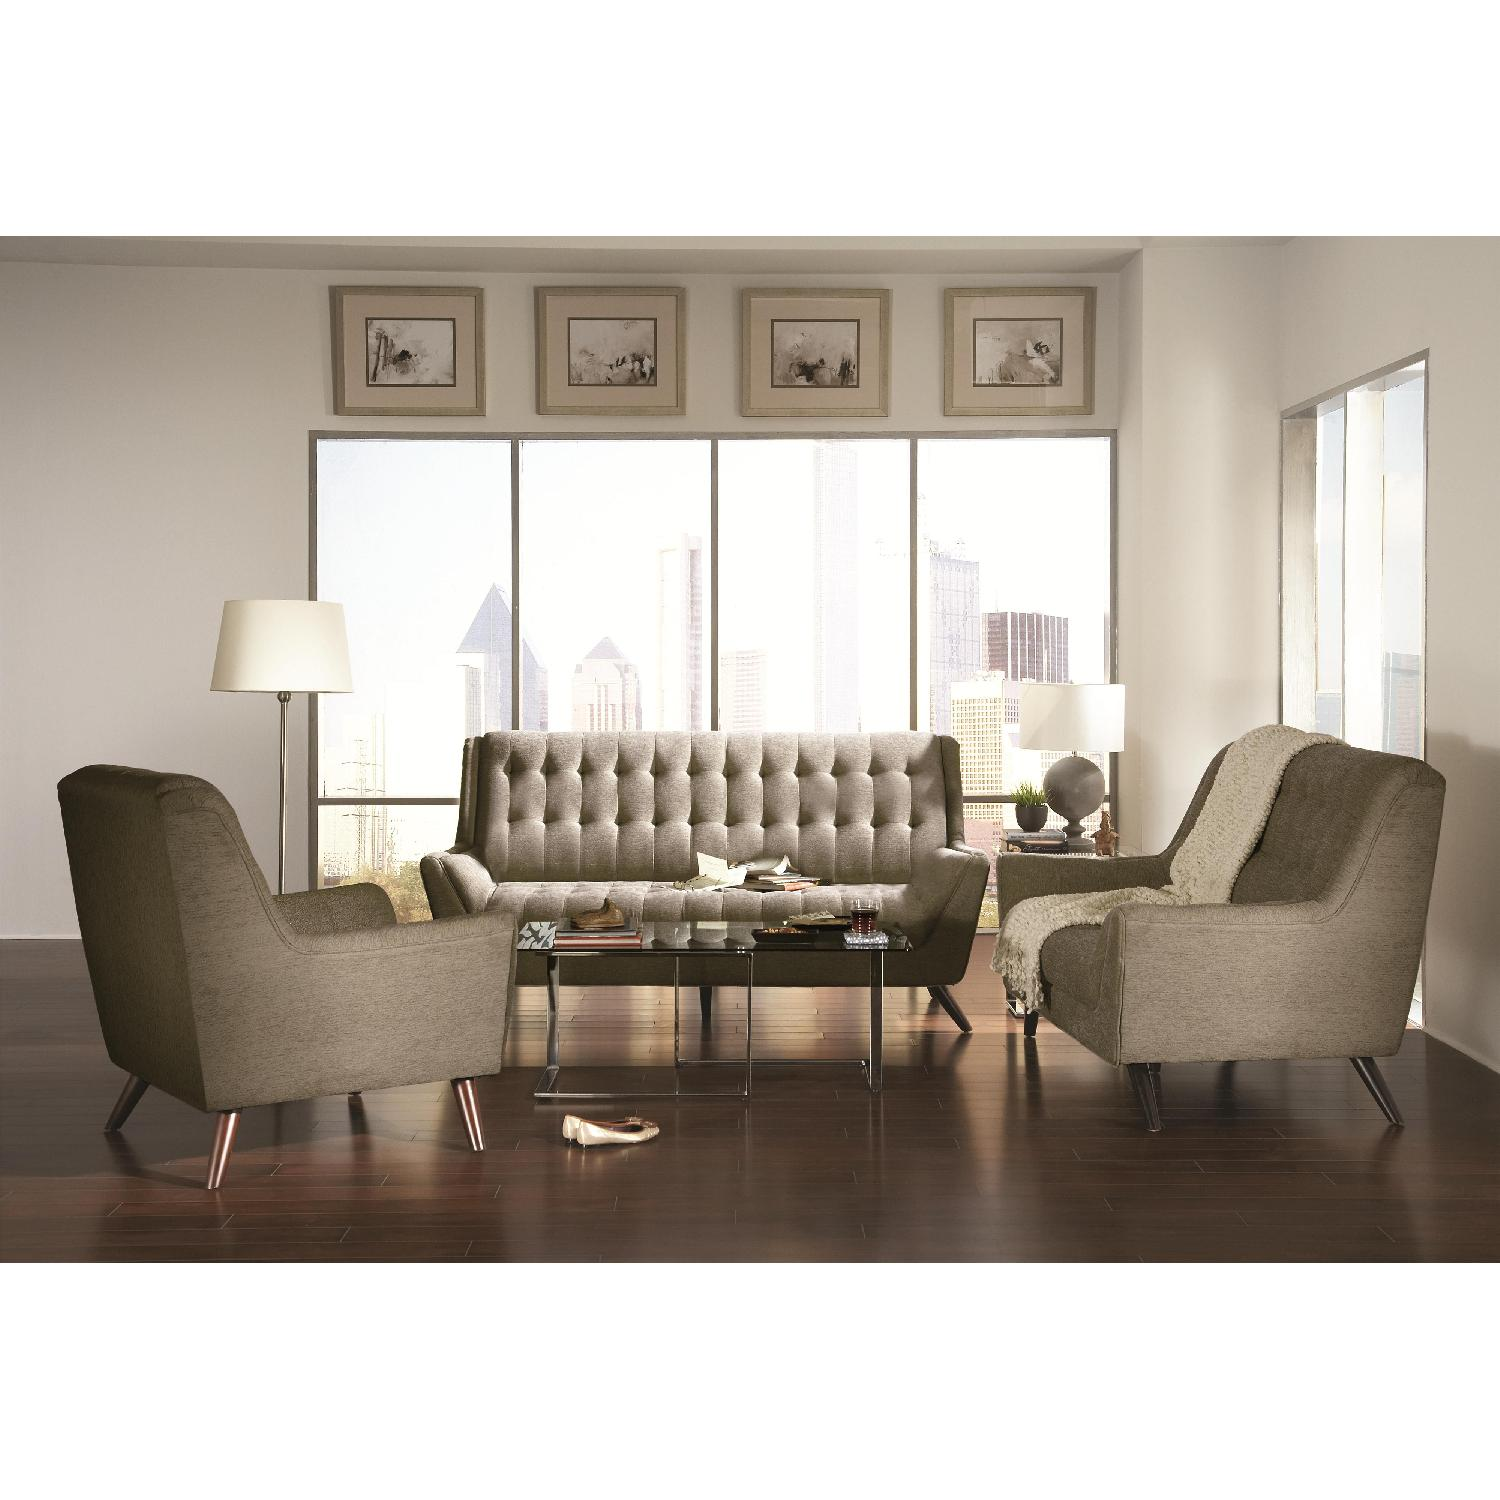 Modern Retro Chair in Light Grey Chenille Fabric - image-2